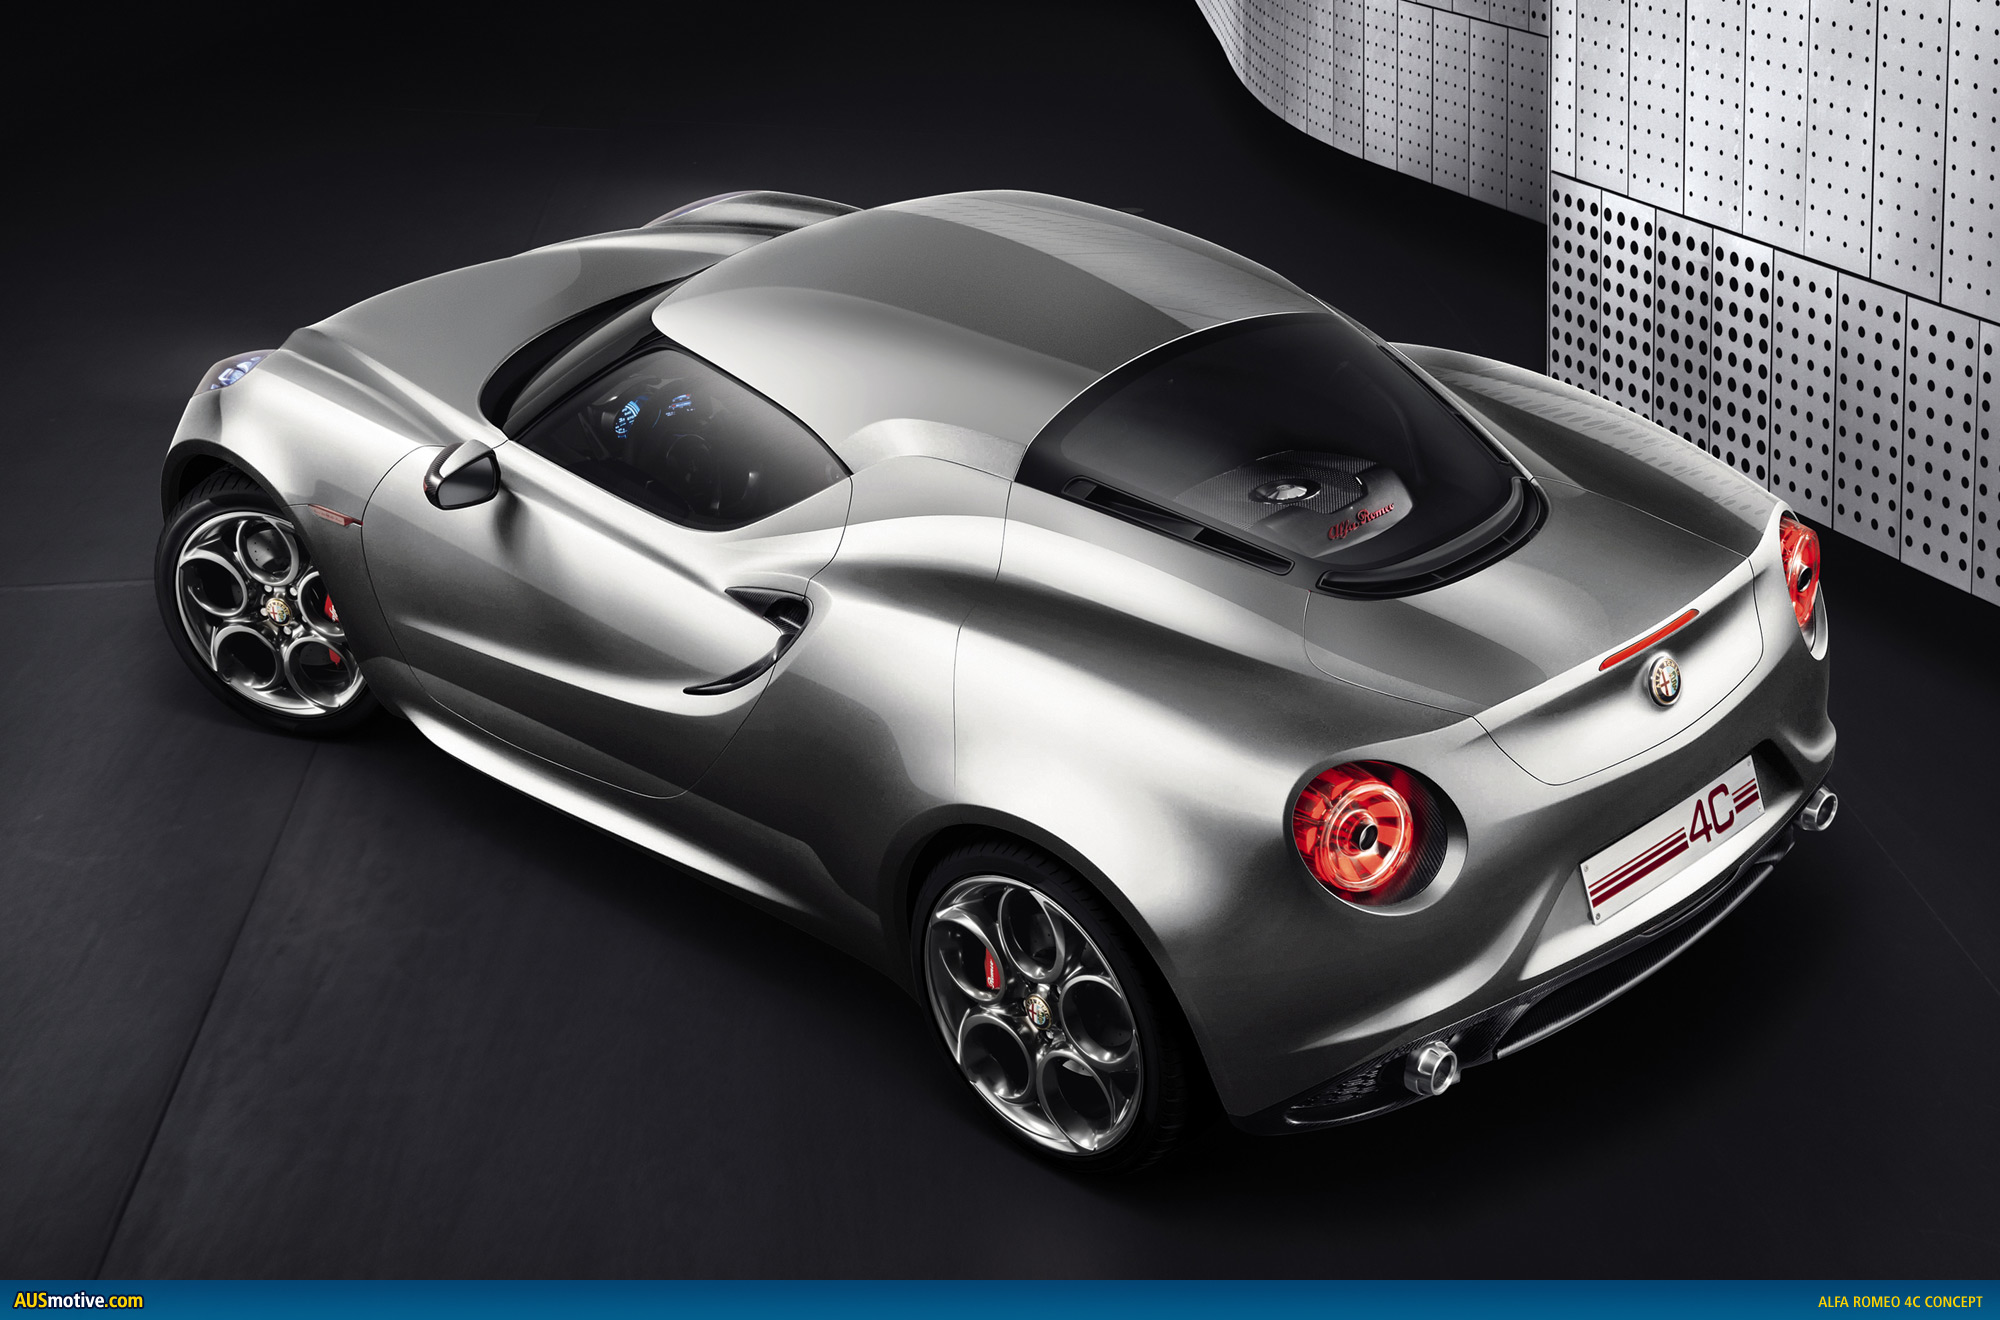 alfa romeo 4c concept given a makeover. Black Bedroom Furniture Sets. Home Design Ideas